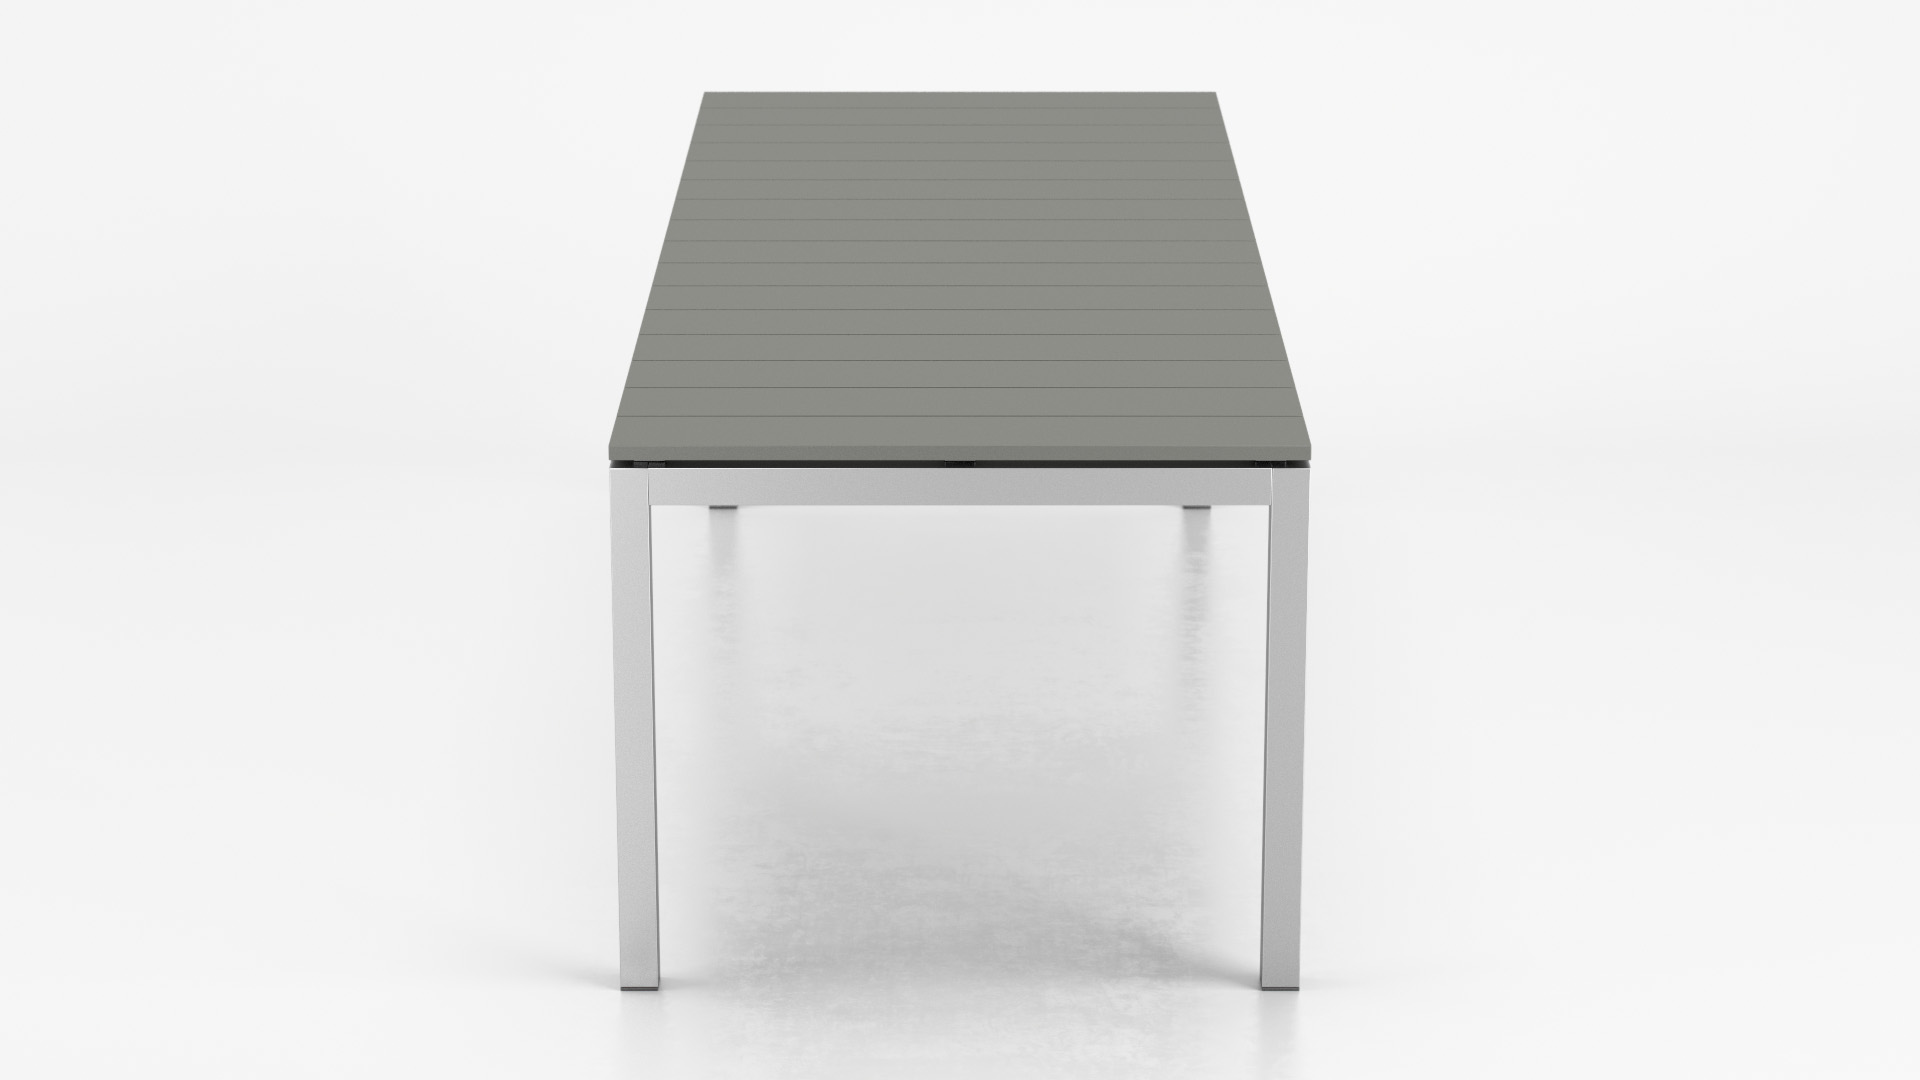 Tribu_NatalTechno_Table_WhiteSet_01_0005